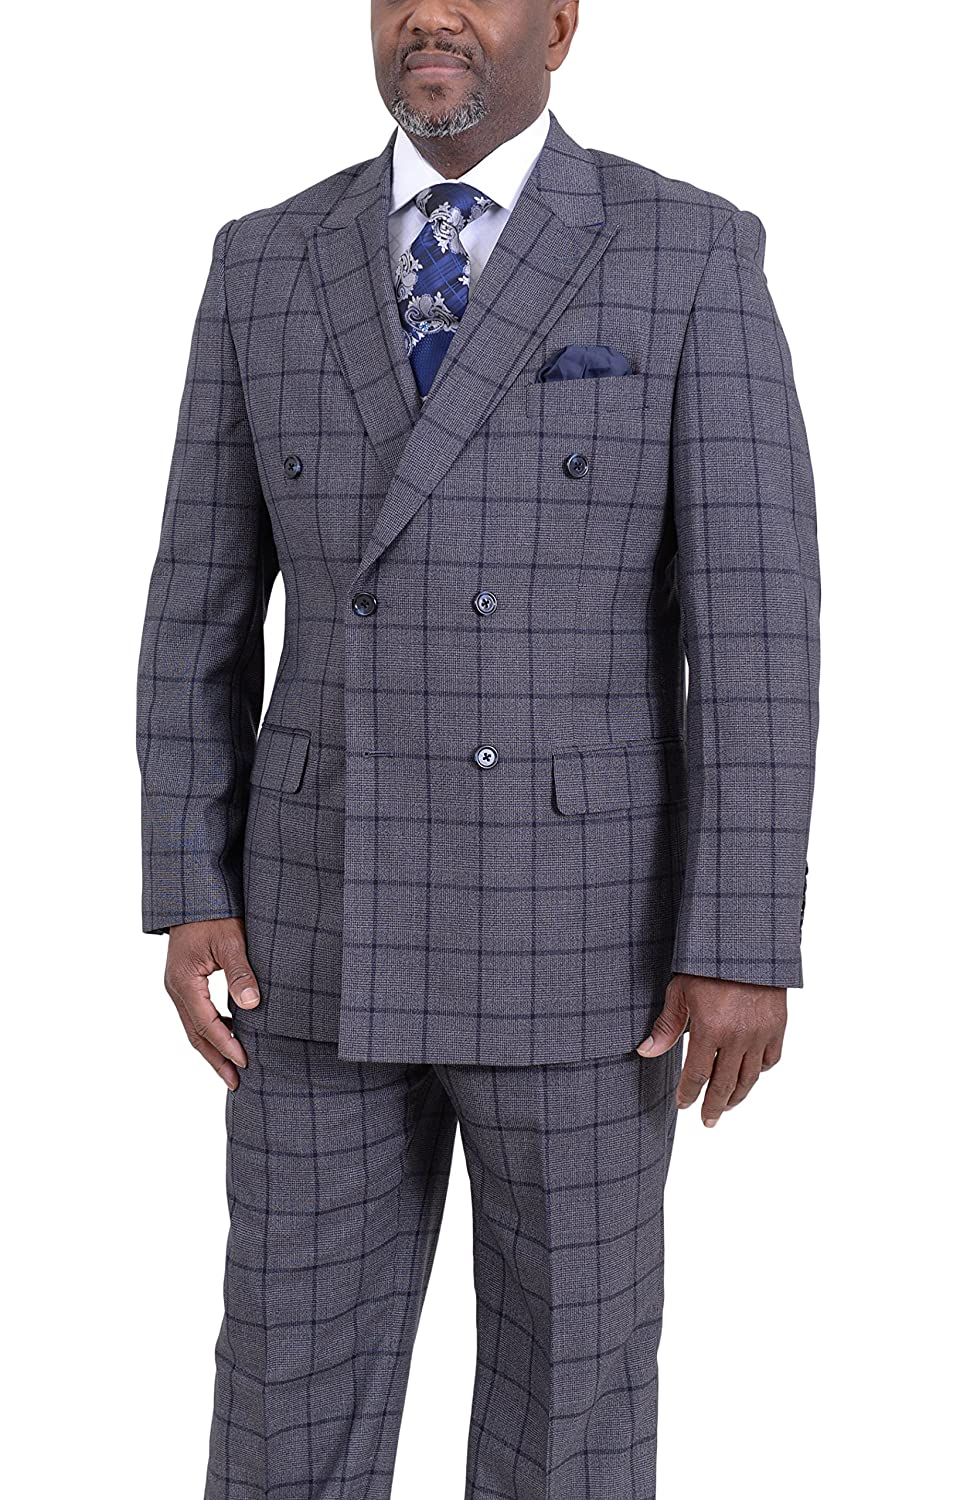 f9aa0f1579def Steven Land Classic Fit Gray Plaid with Blue Windowpane Double Breasted Suit  at Amazon Men s Clothing store